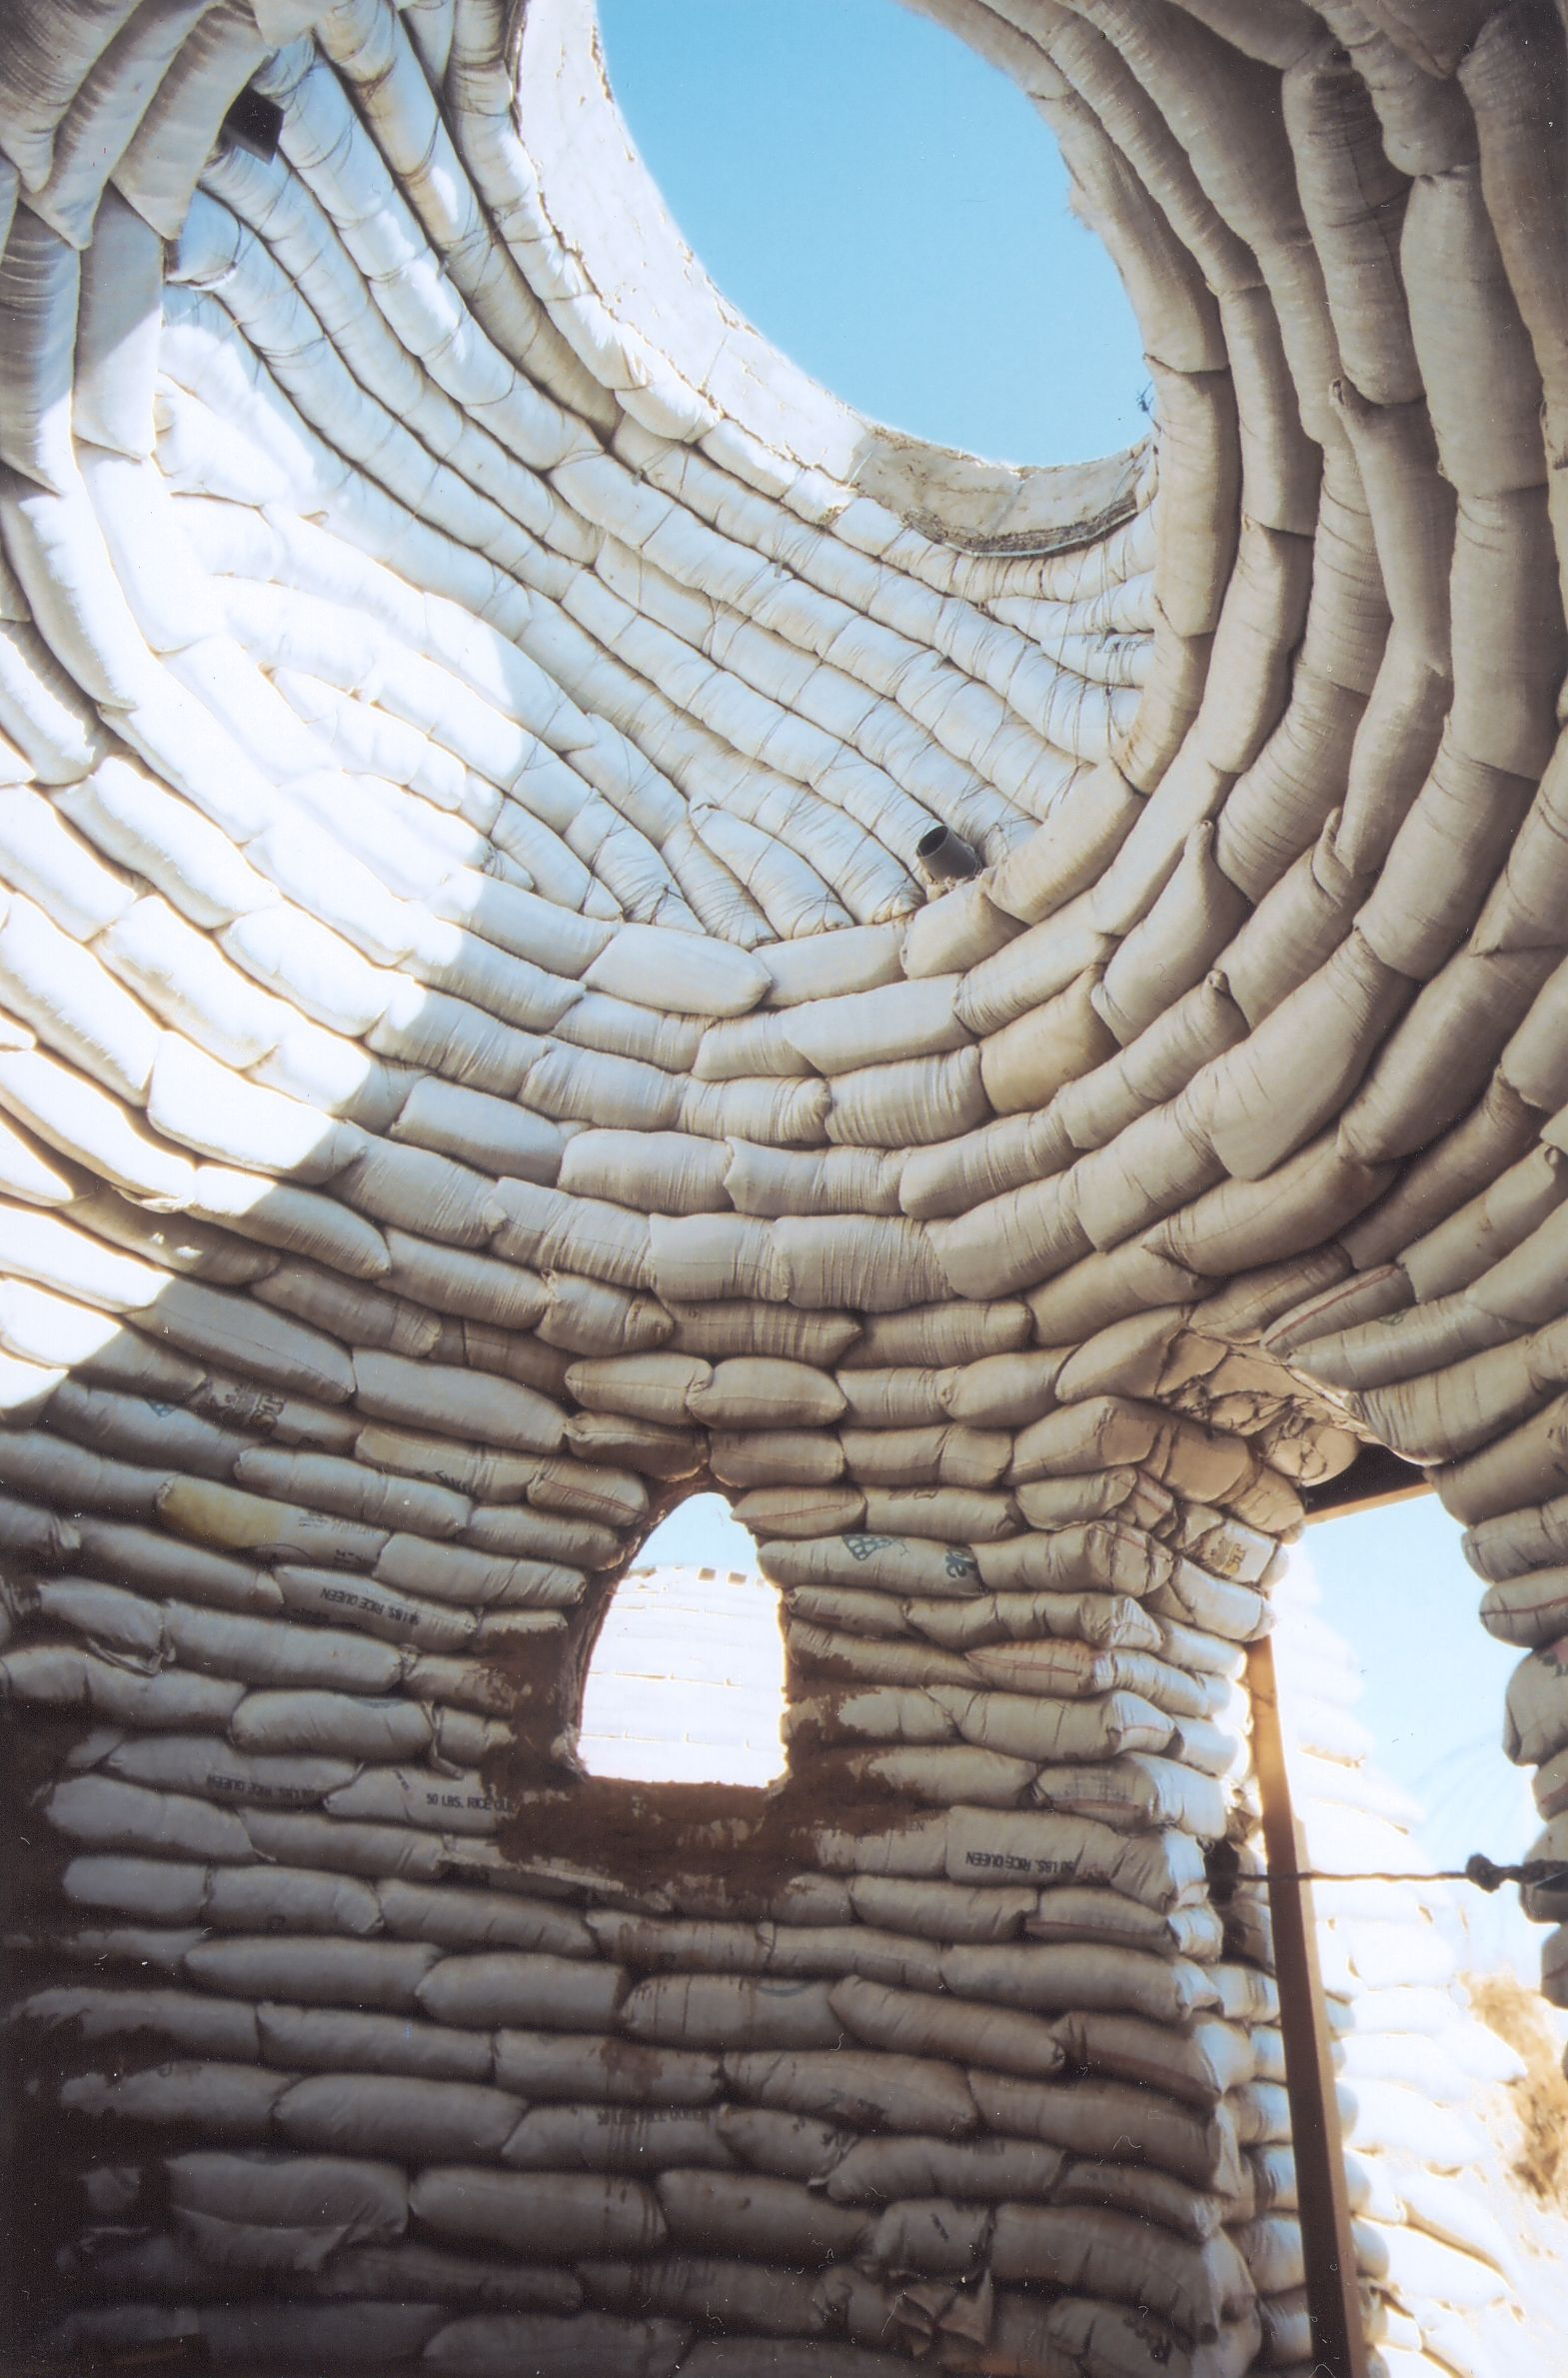 Sandbag Shelter Prototypes By Nader Khalili The California Institute Of Earth Art And Architecture